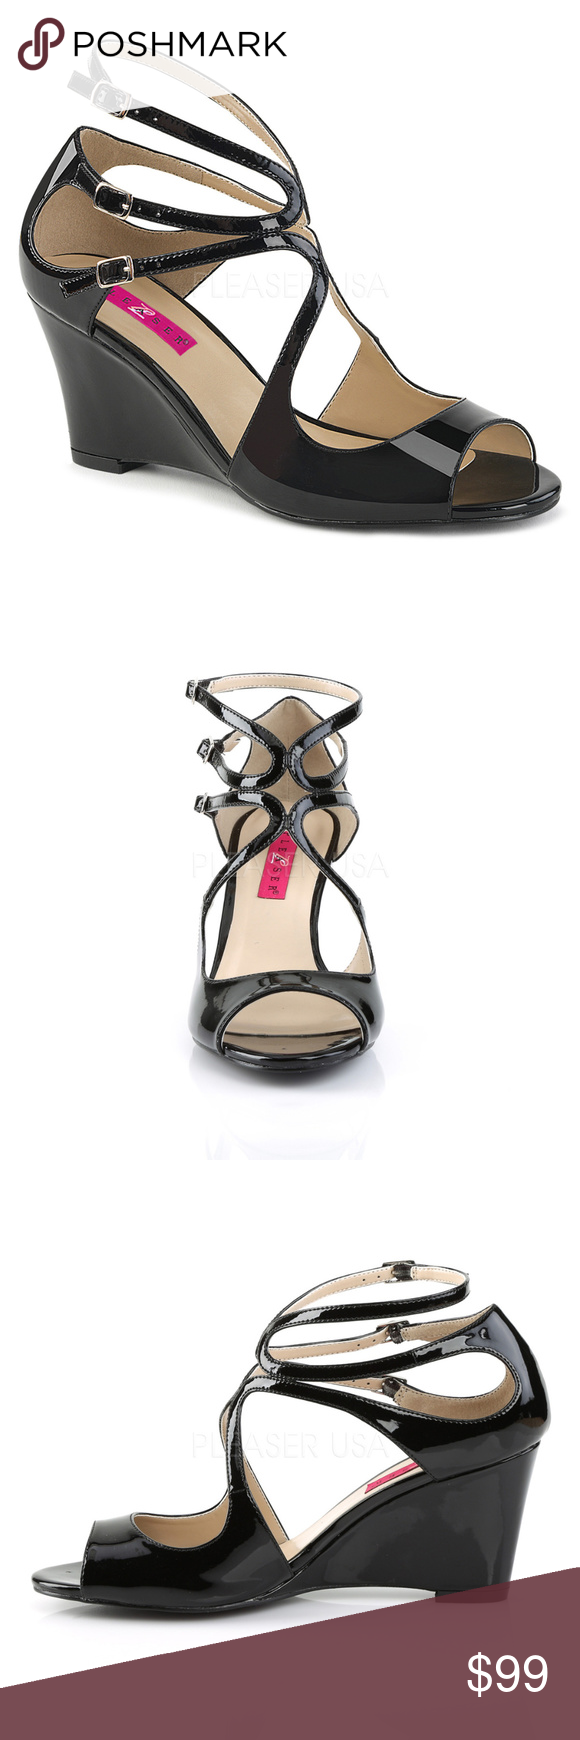 258d4f5c81a797 Strappy Wedge Sandal Shoes Large Sizes 9-16 Black Strappy Wedge Sandal  Shoes Large Sizes 9-16 Red 3